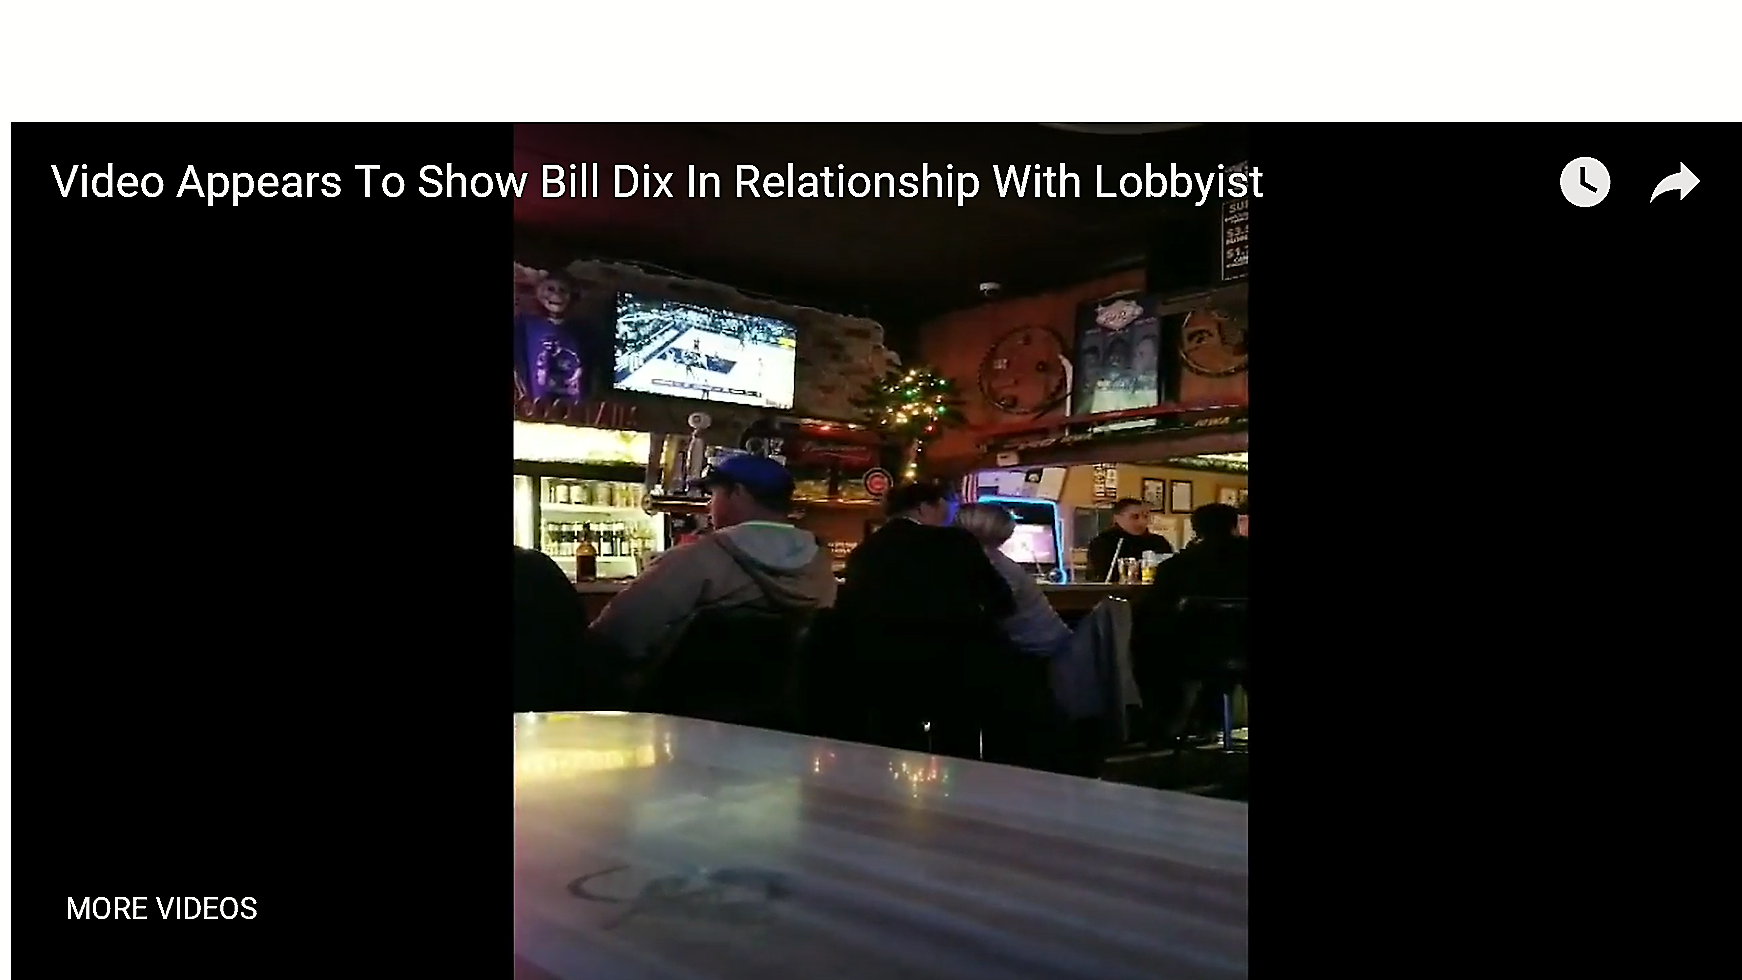 The top leader of the Iowa Senate resigned Monday after a website published video and photos showing the married lawmaker kissing a statehouse lobbyist